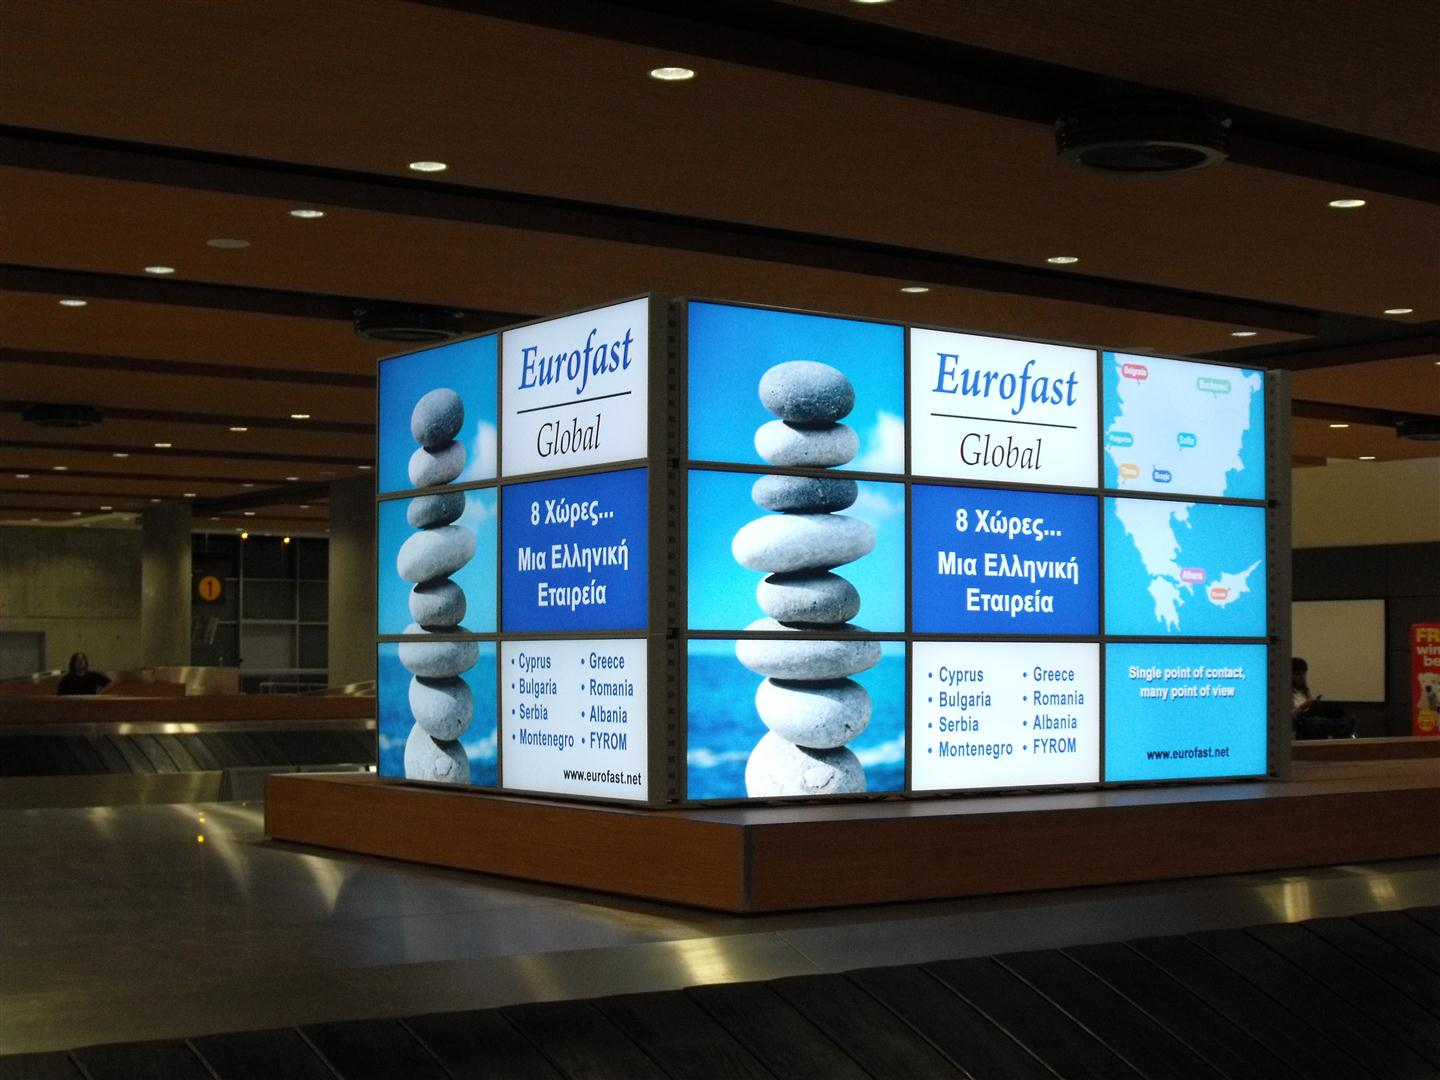 Scala Digital Signage Network at Larnaca Airport showing Eurofast Global